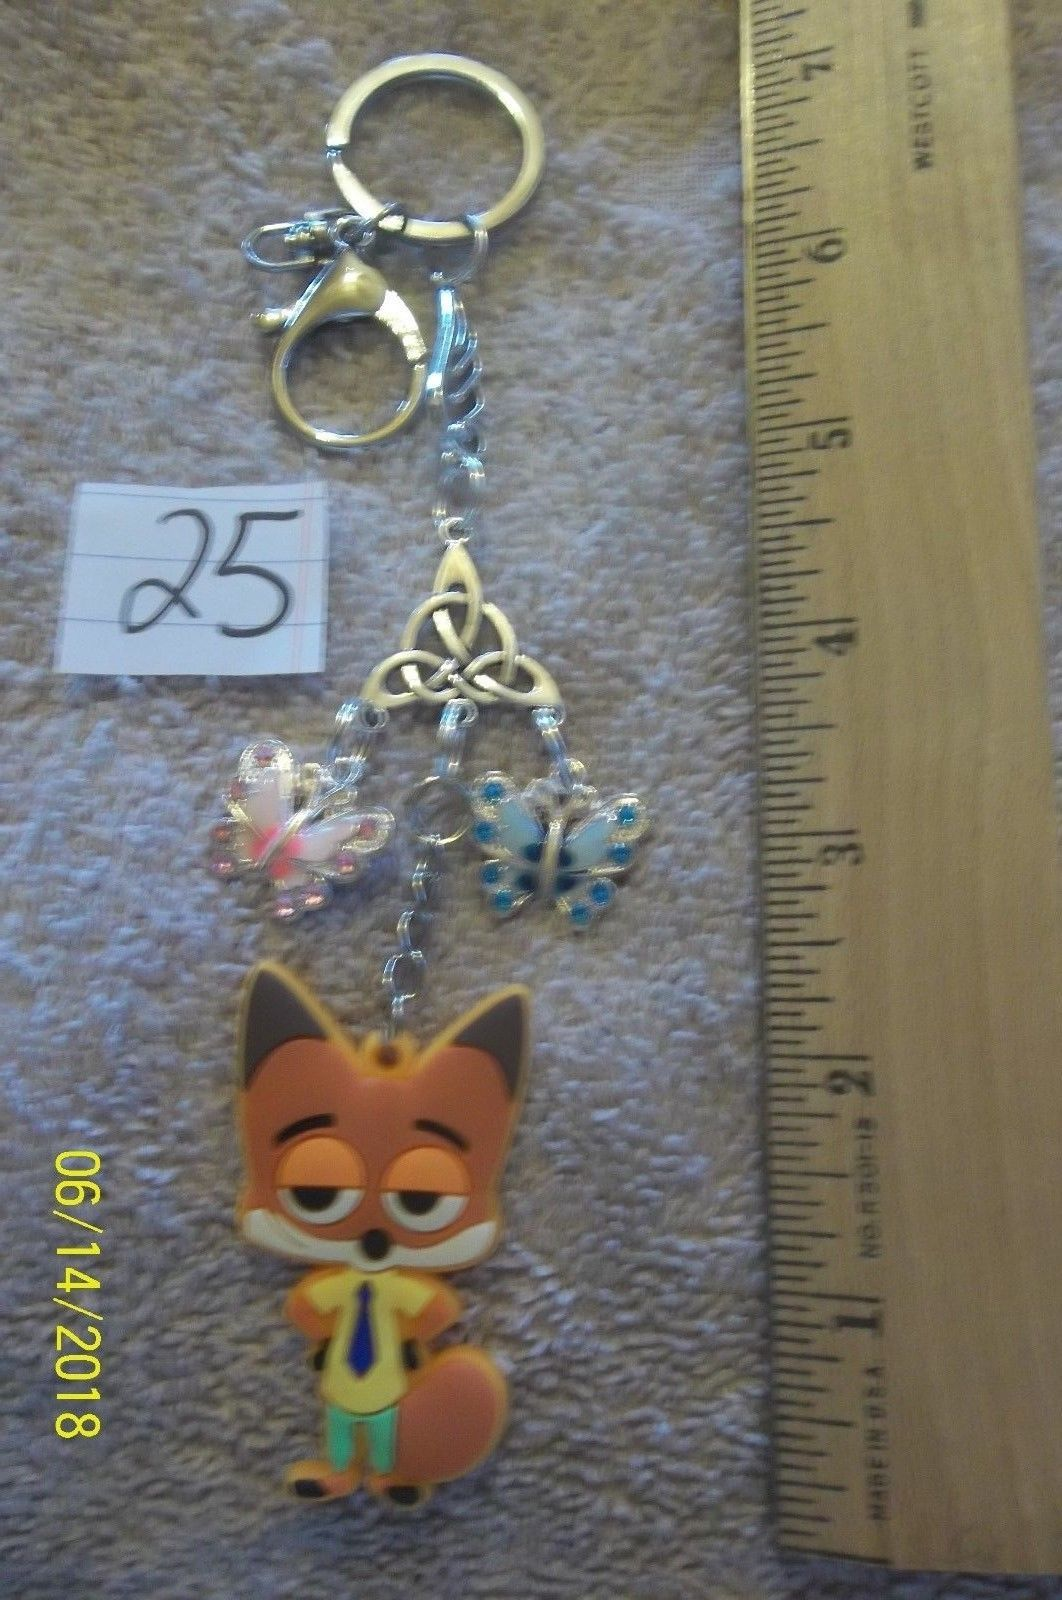 # purse jewelry silver color componant keychain backpack  dangle charm #25